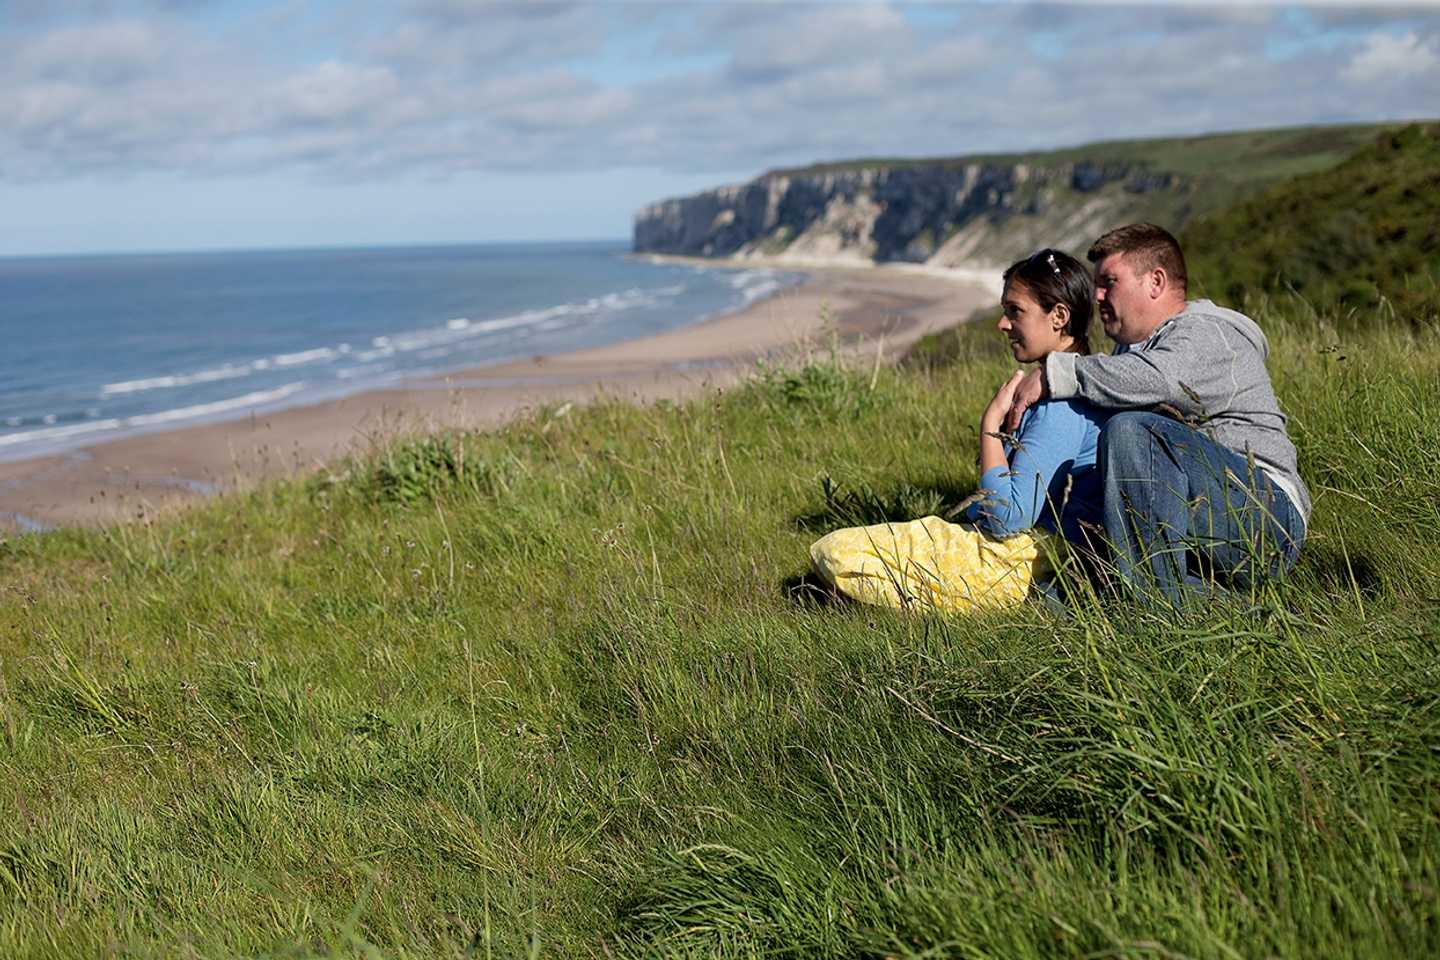 A couple hugging each other as they look at the sea and cliffs near Reighton Sands